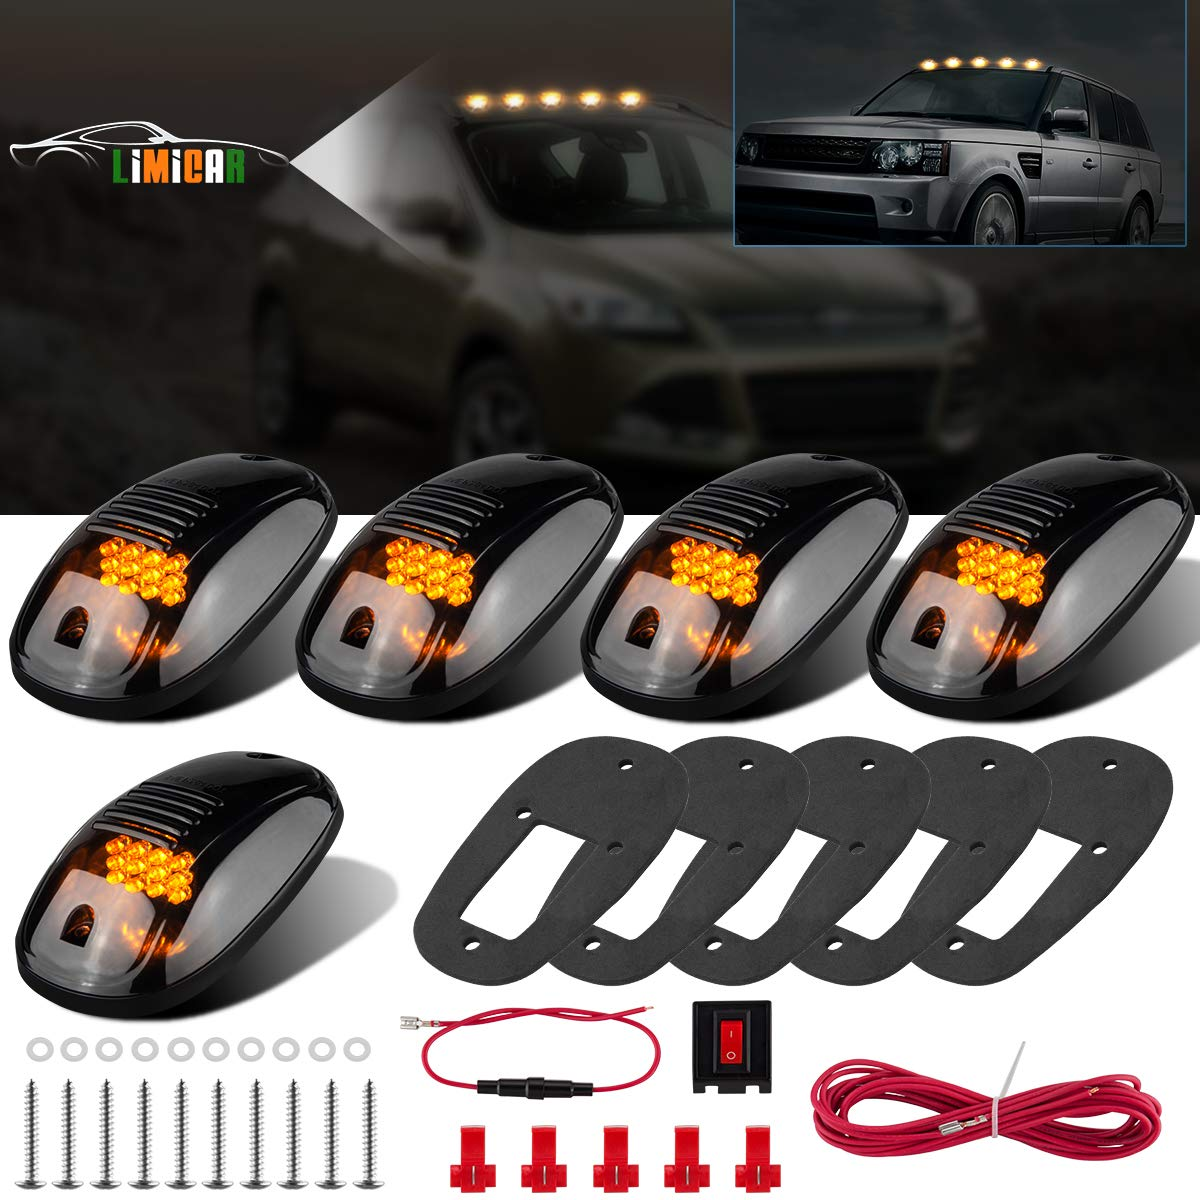 B07G13T1PV LIMICAR 5X Amber Cab Roof Marker Top Running 12LED Cab Lights Compatible w/ 03-10 Dodge Ram 1500 2500 3500 4500 11-16 Ram 1500 2500 3500 4500 5500 Pickup Trucks w/Stock Cab Marker Lights 71kgVHqeVeL